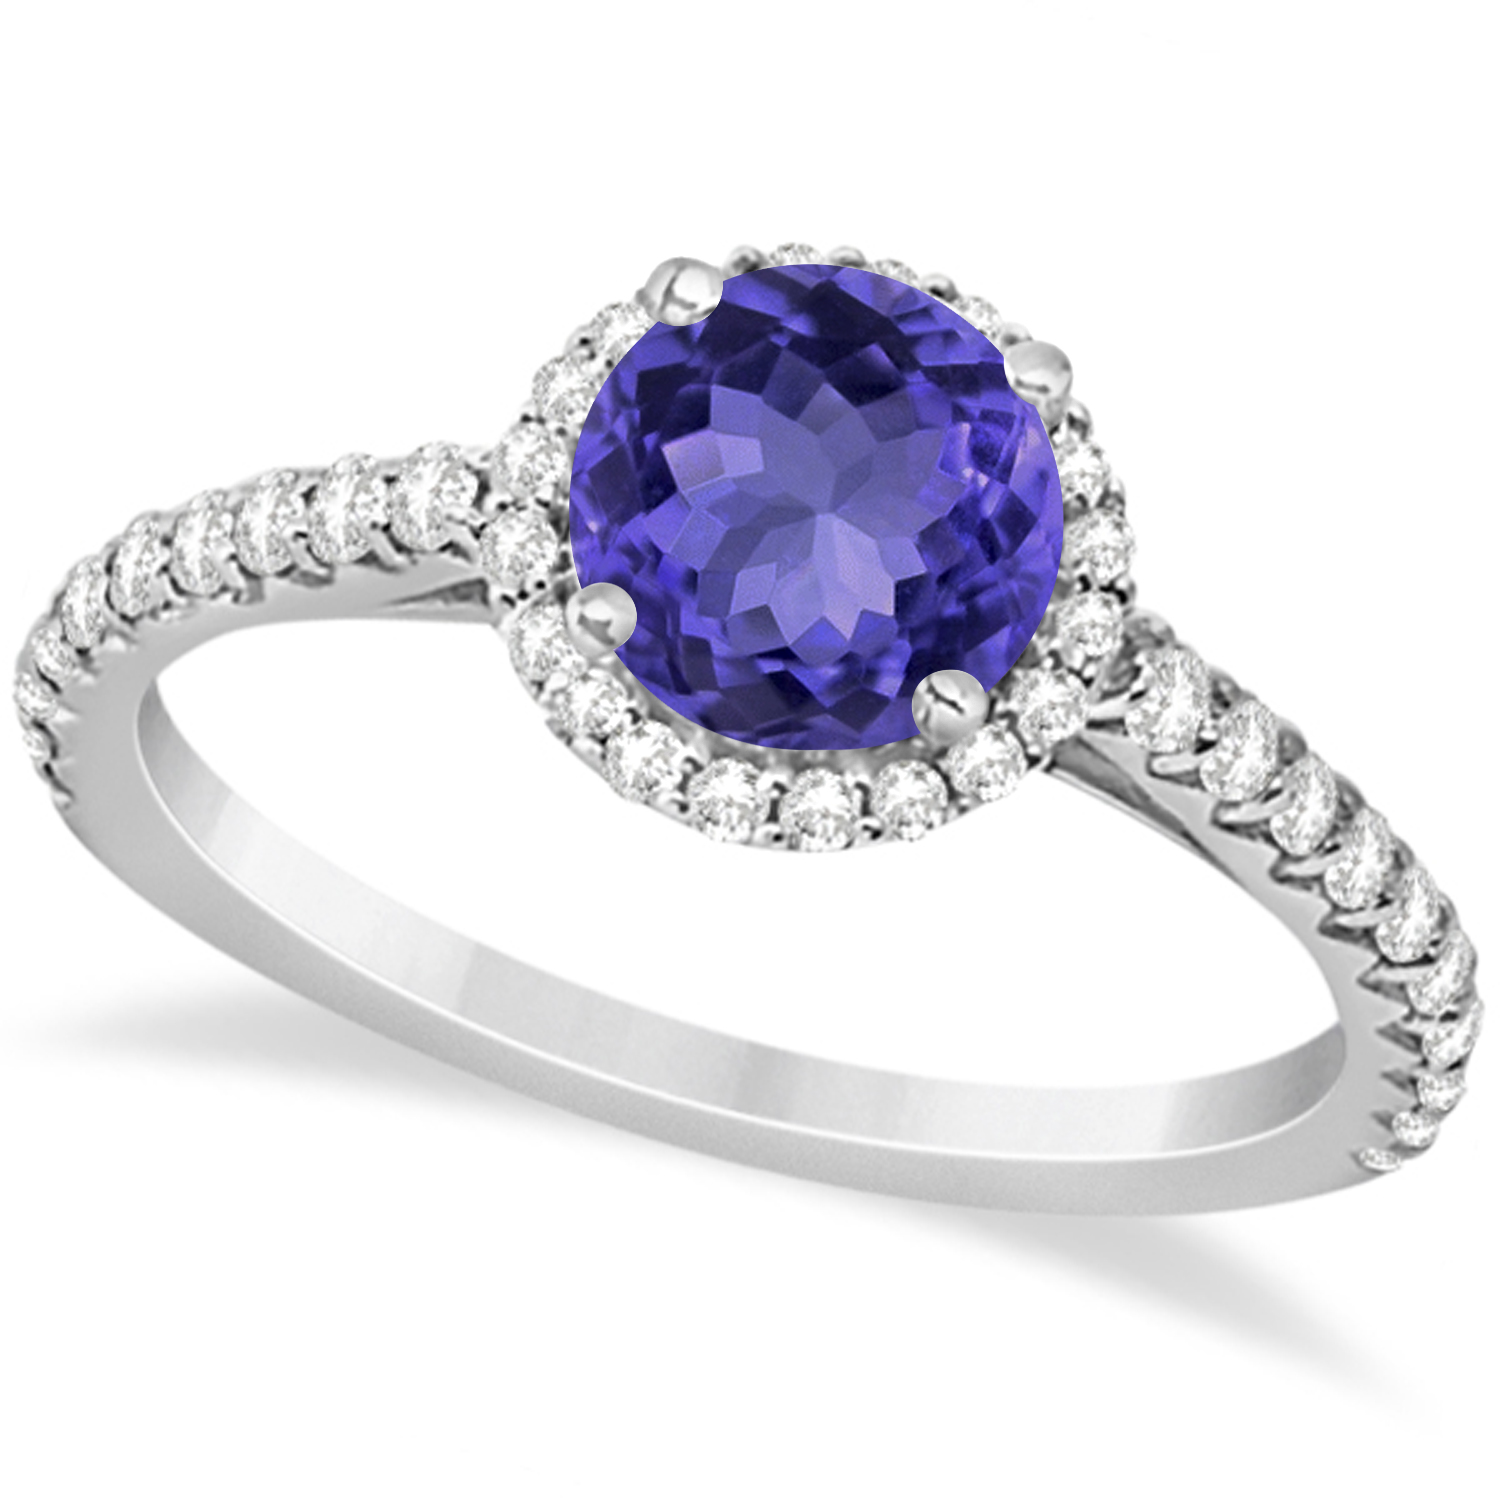 Diamond Engagement Rings With Tanzanite Accents